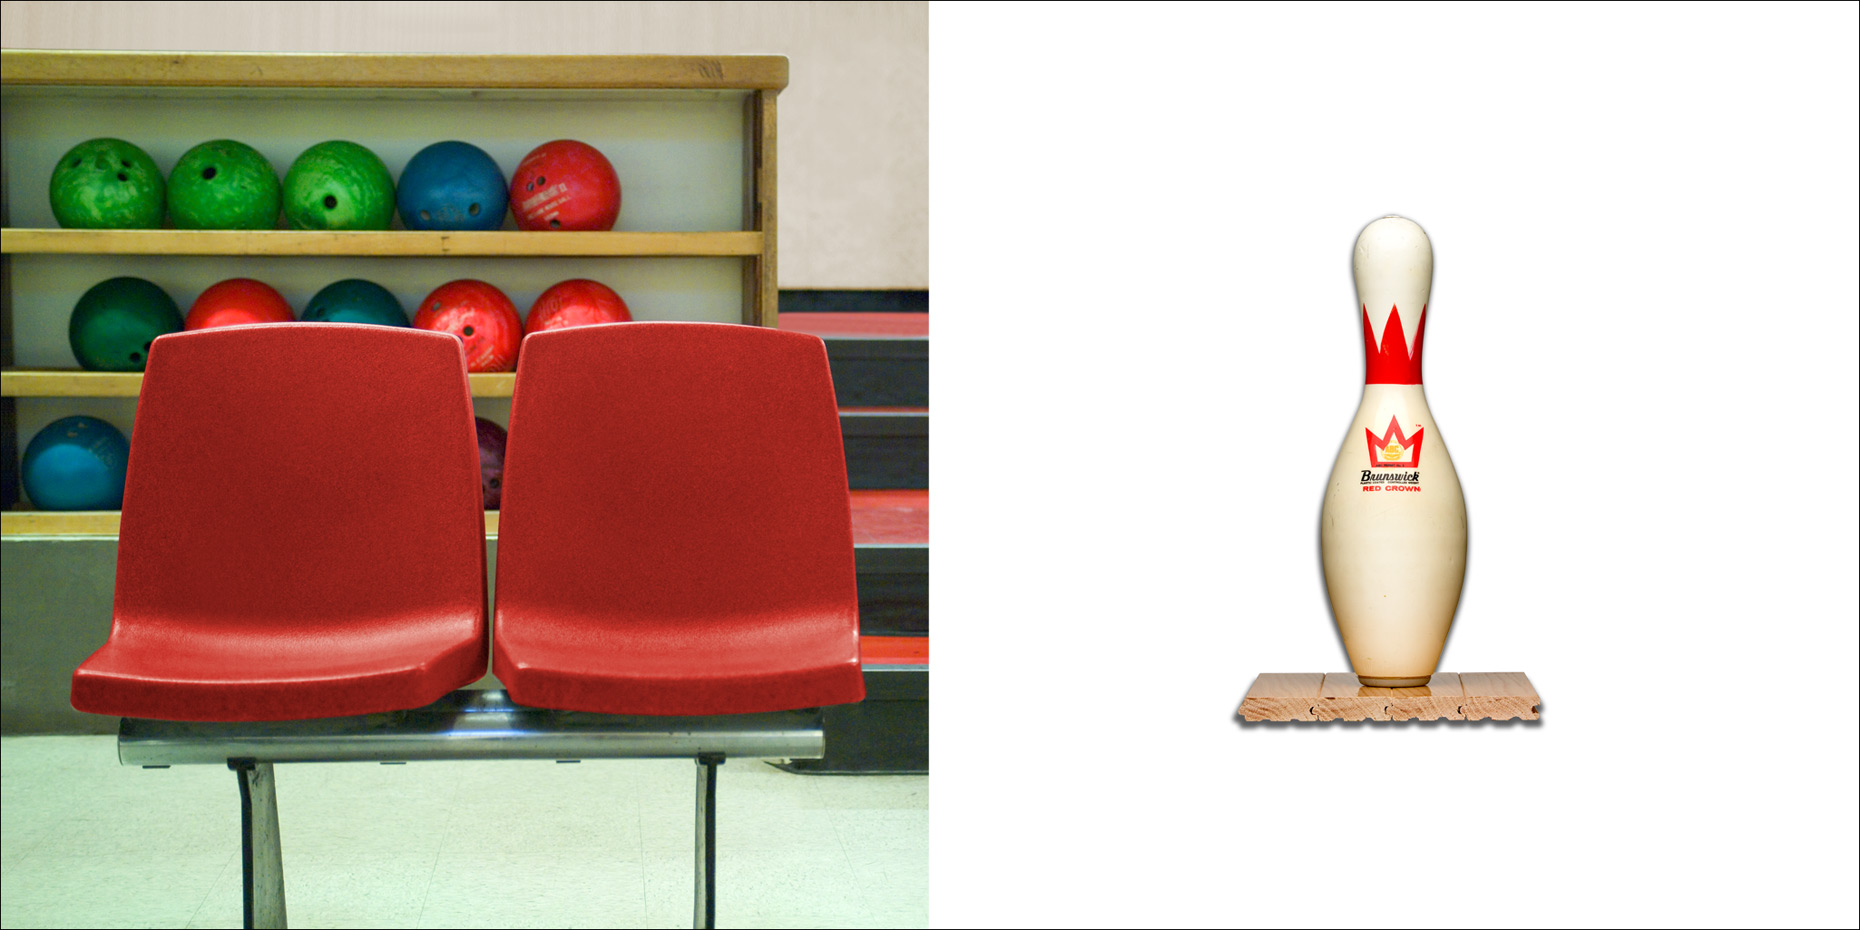 Bowling Pin & Red Chairs